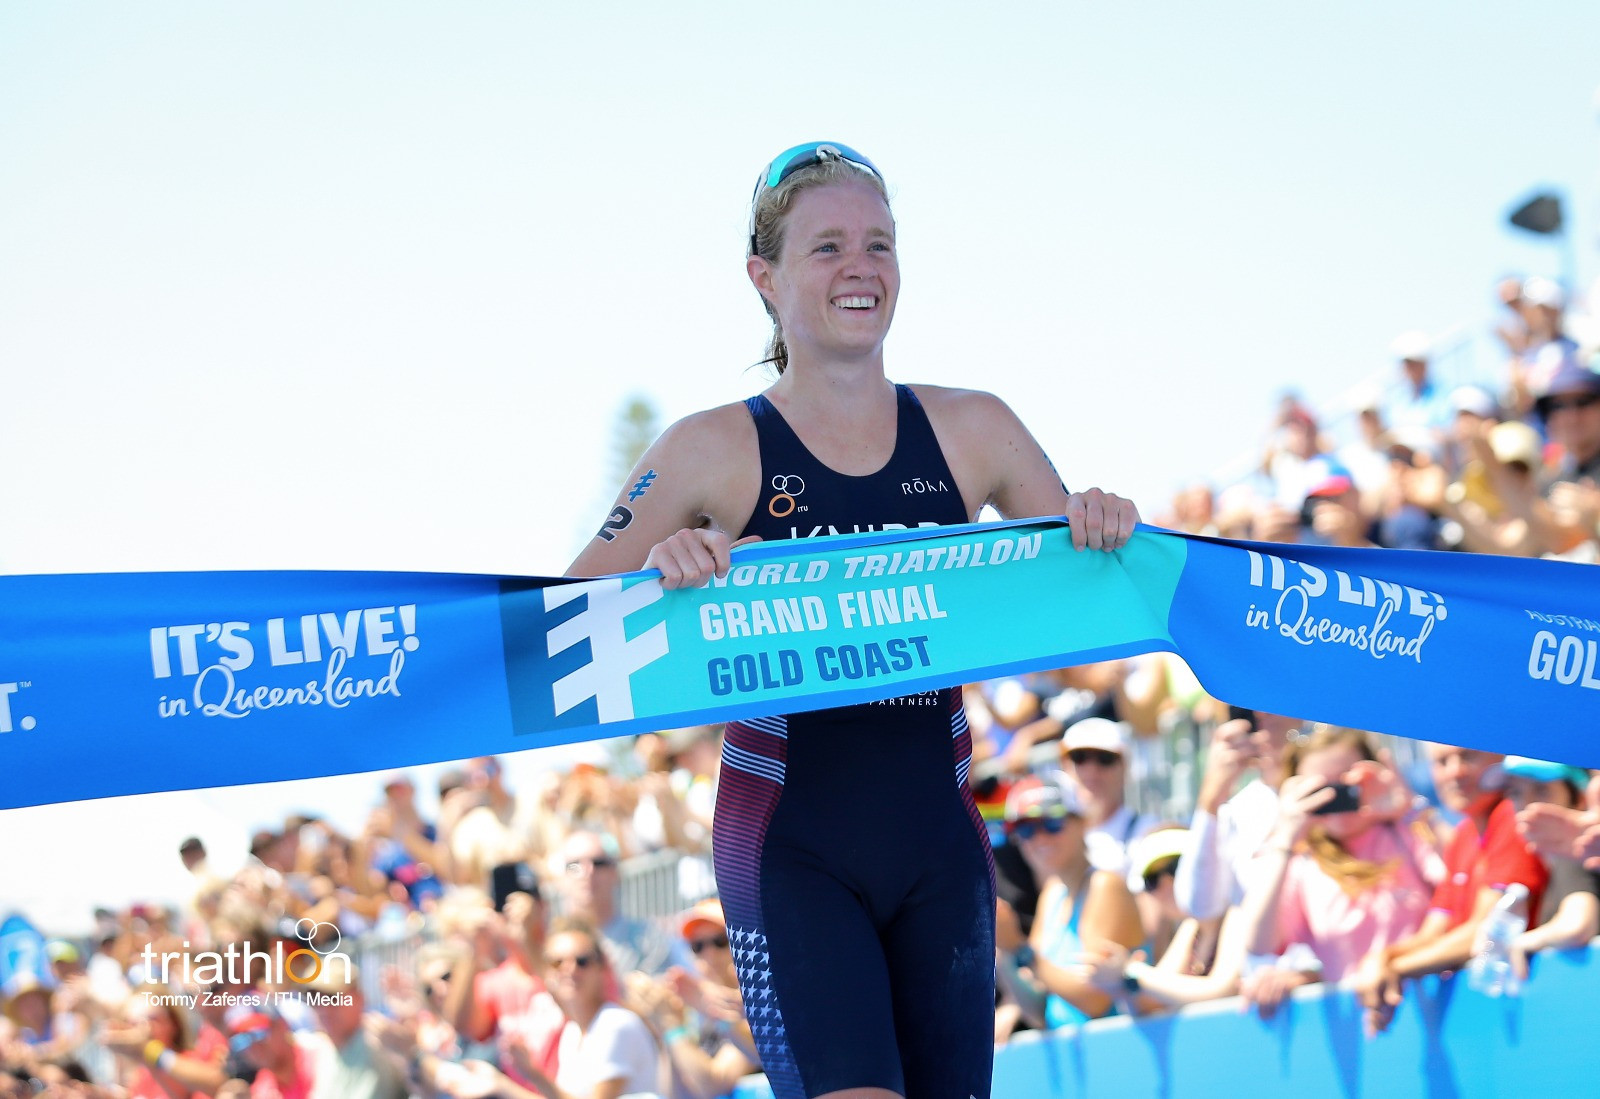 Taylor Knibb of the United States wins the ITU world under-23 women's title on the Gold Coast ©ITU